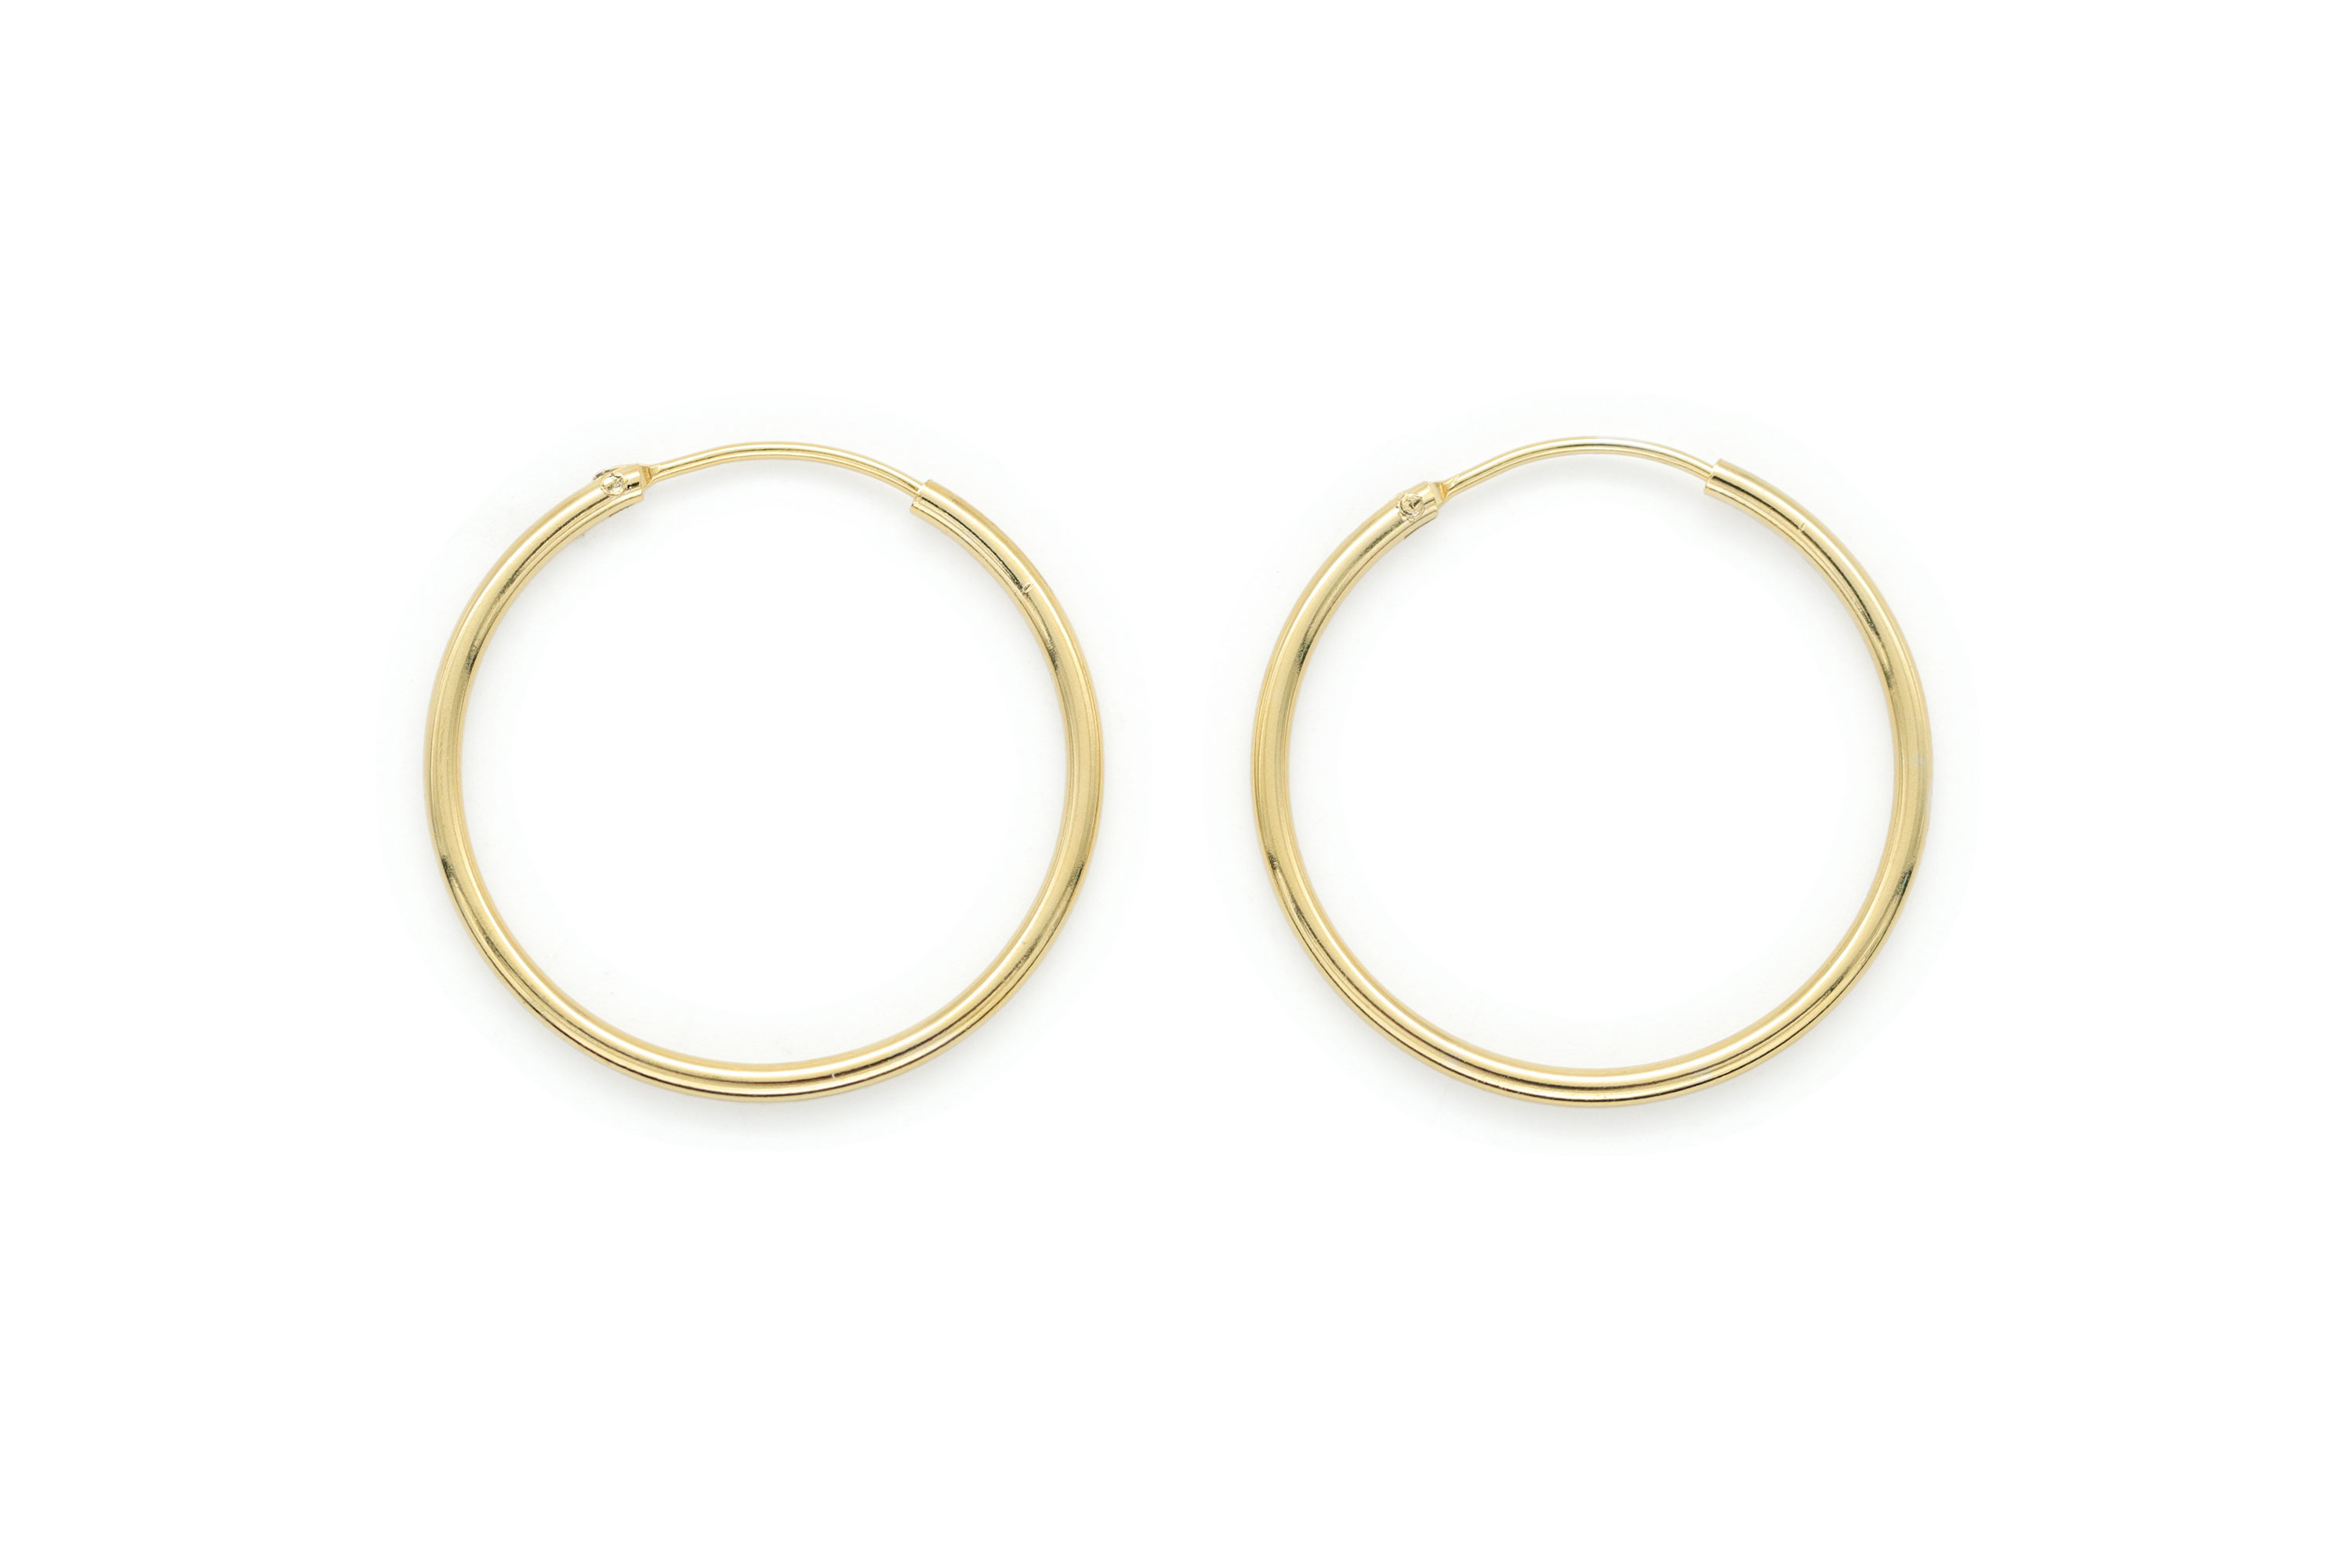 25mm round hoop earrings, T65-R7